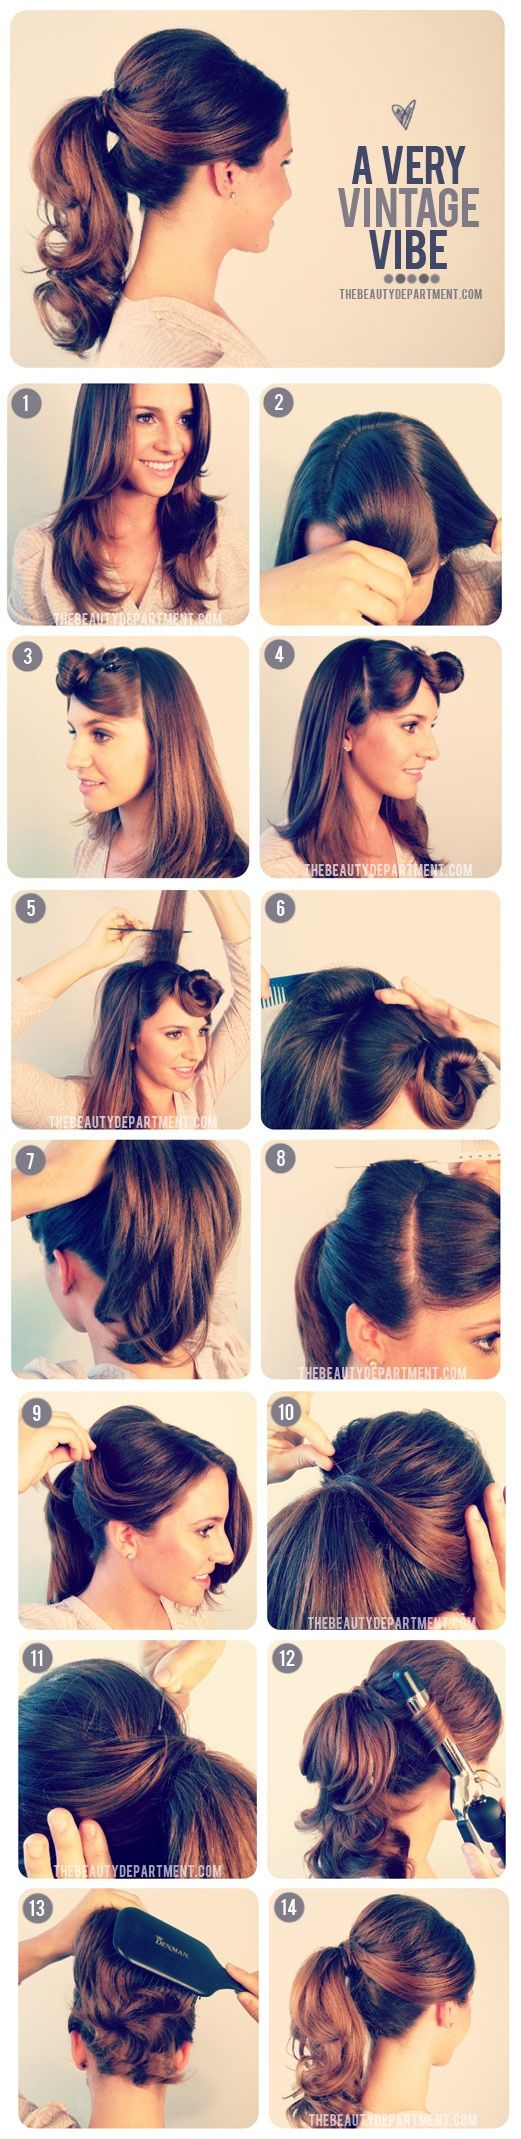 Ha Hair Accessories For Apostolic Long Hair - 1950 s inspired ponytail